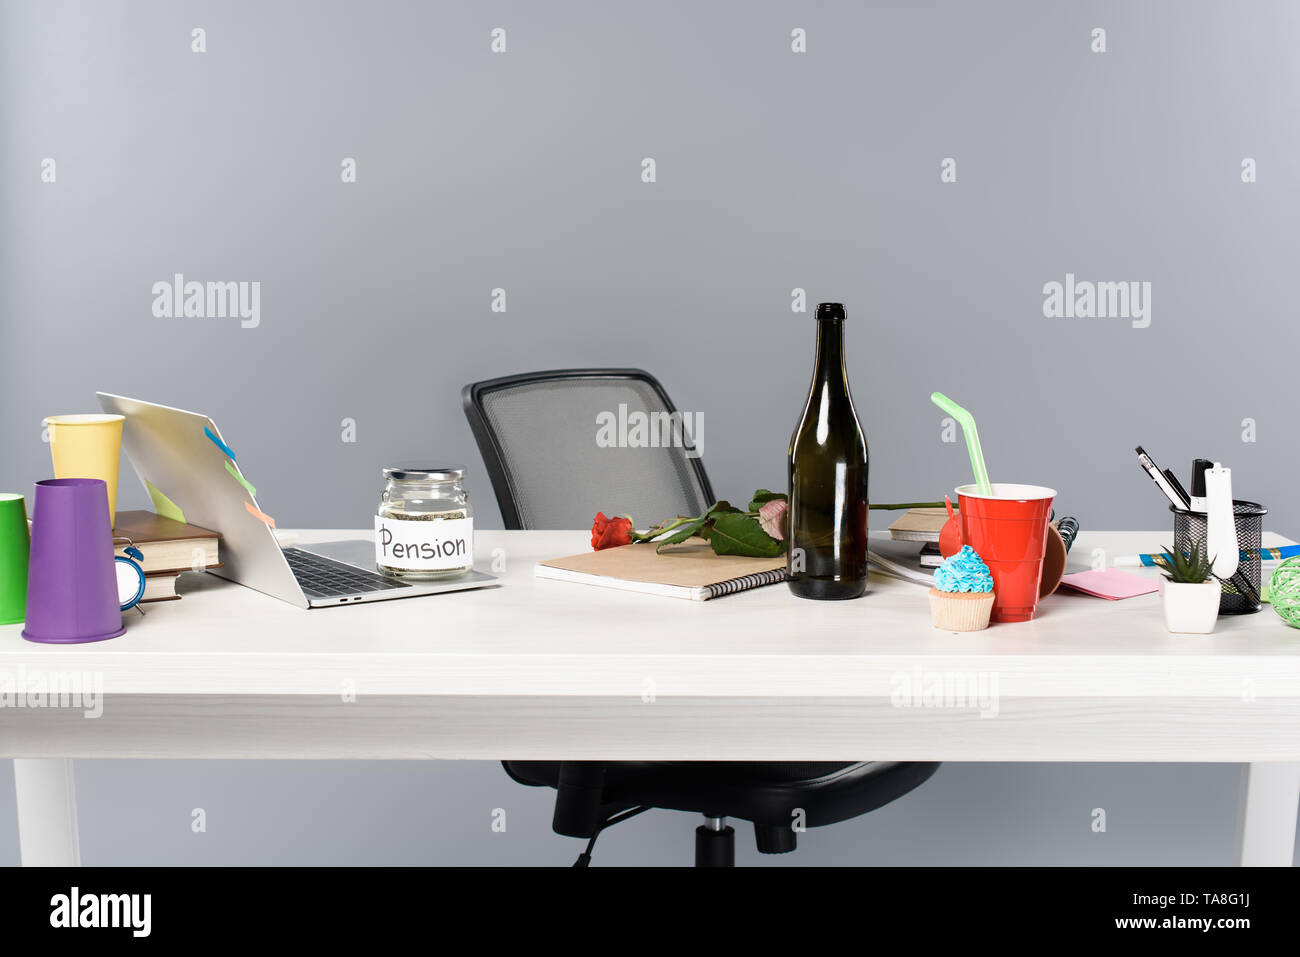 messy workplace with champagne bottle, paper cups, pension moneybox and laptop on white table - Stock Image